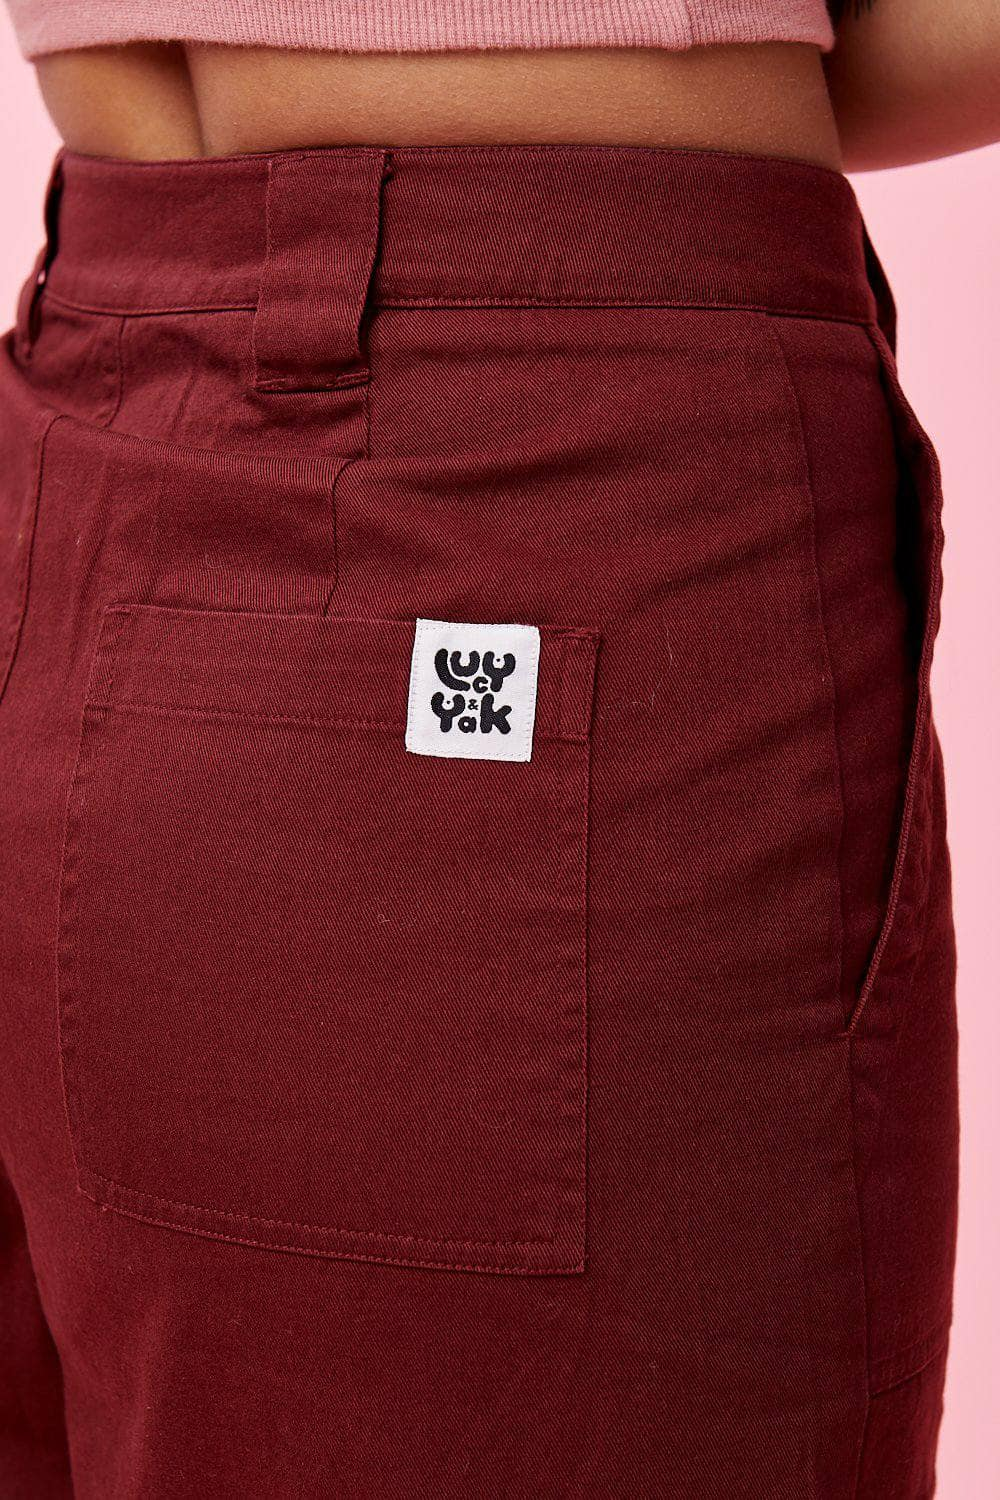 Lucy & Yak cotton trousers 'Jayden' 90s Oversized Cargo Pants in Burgundy